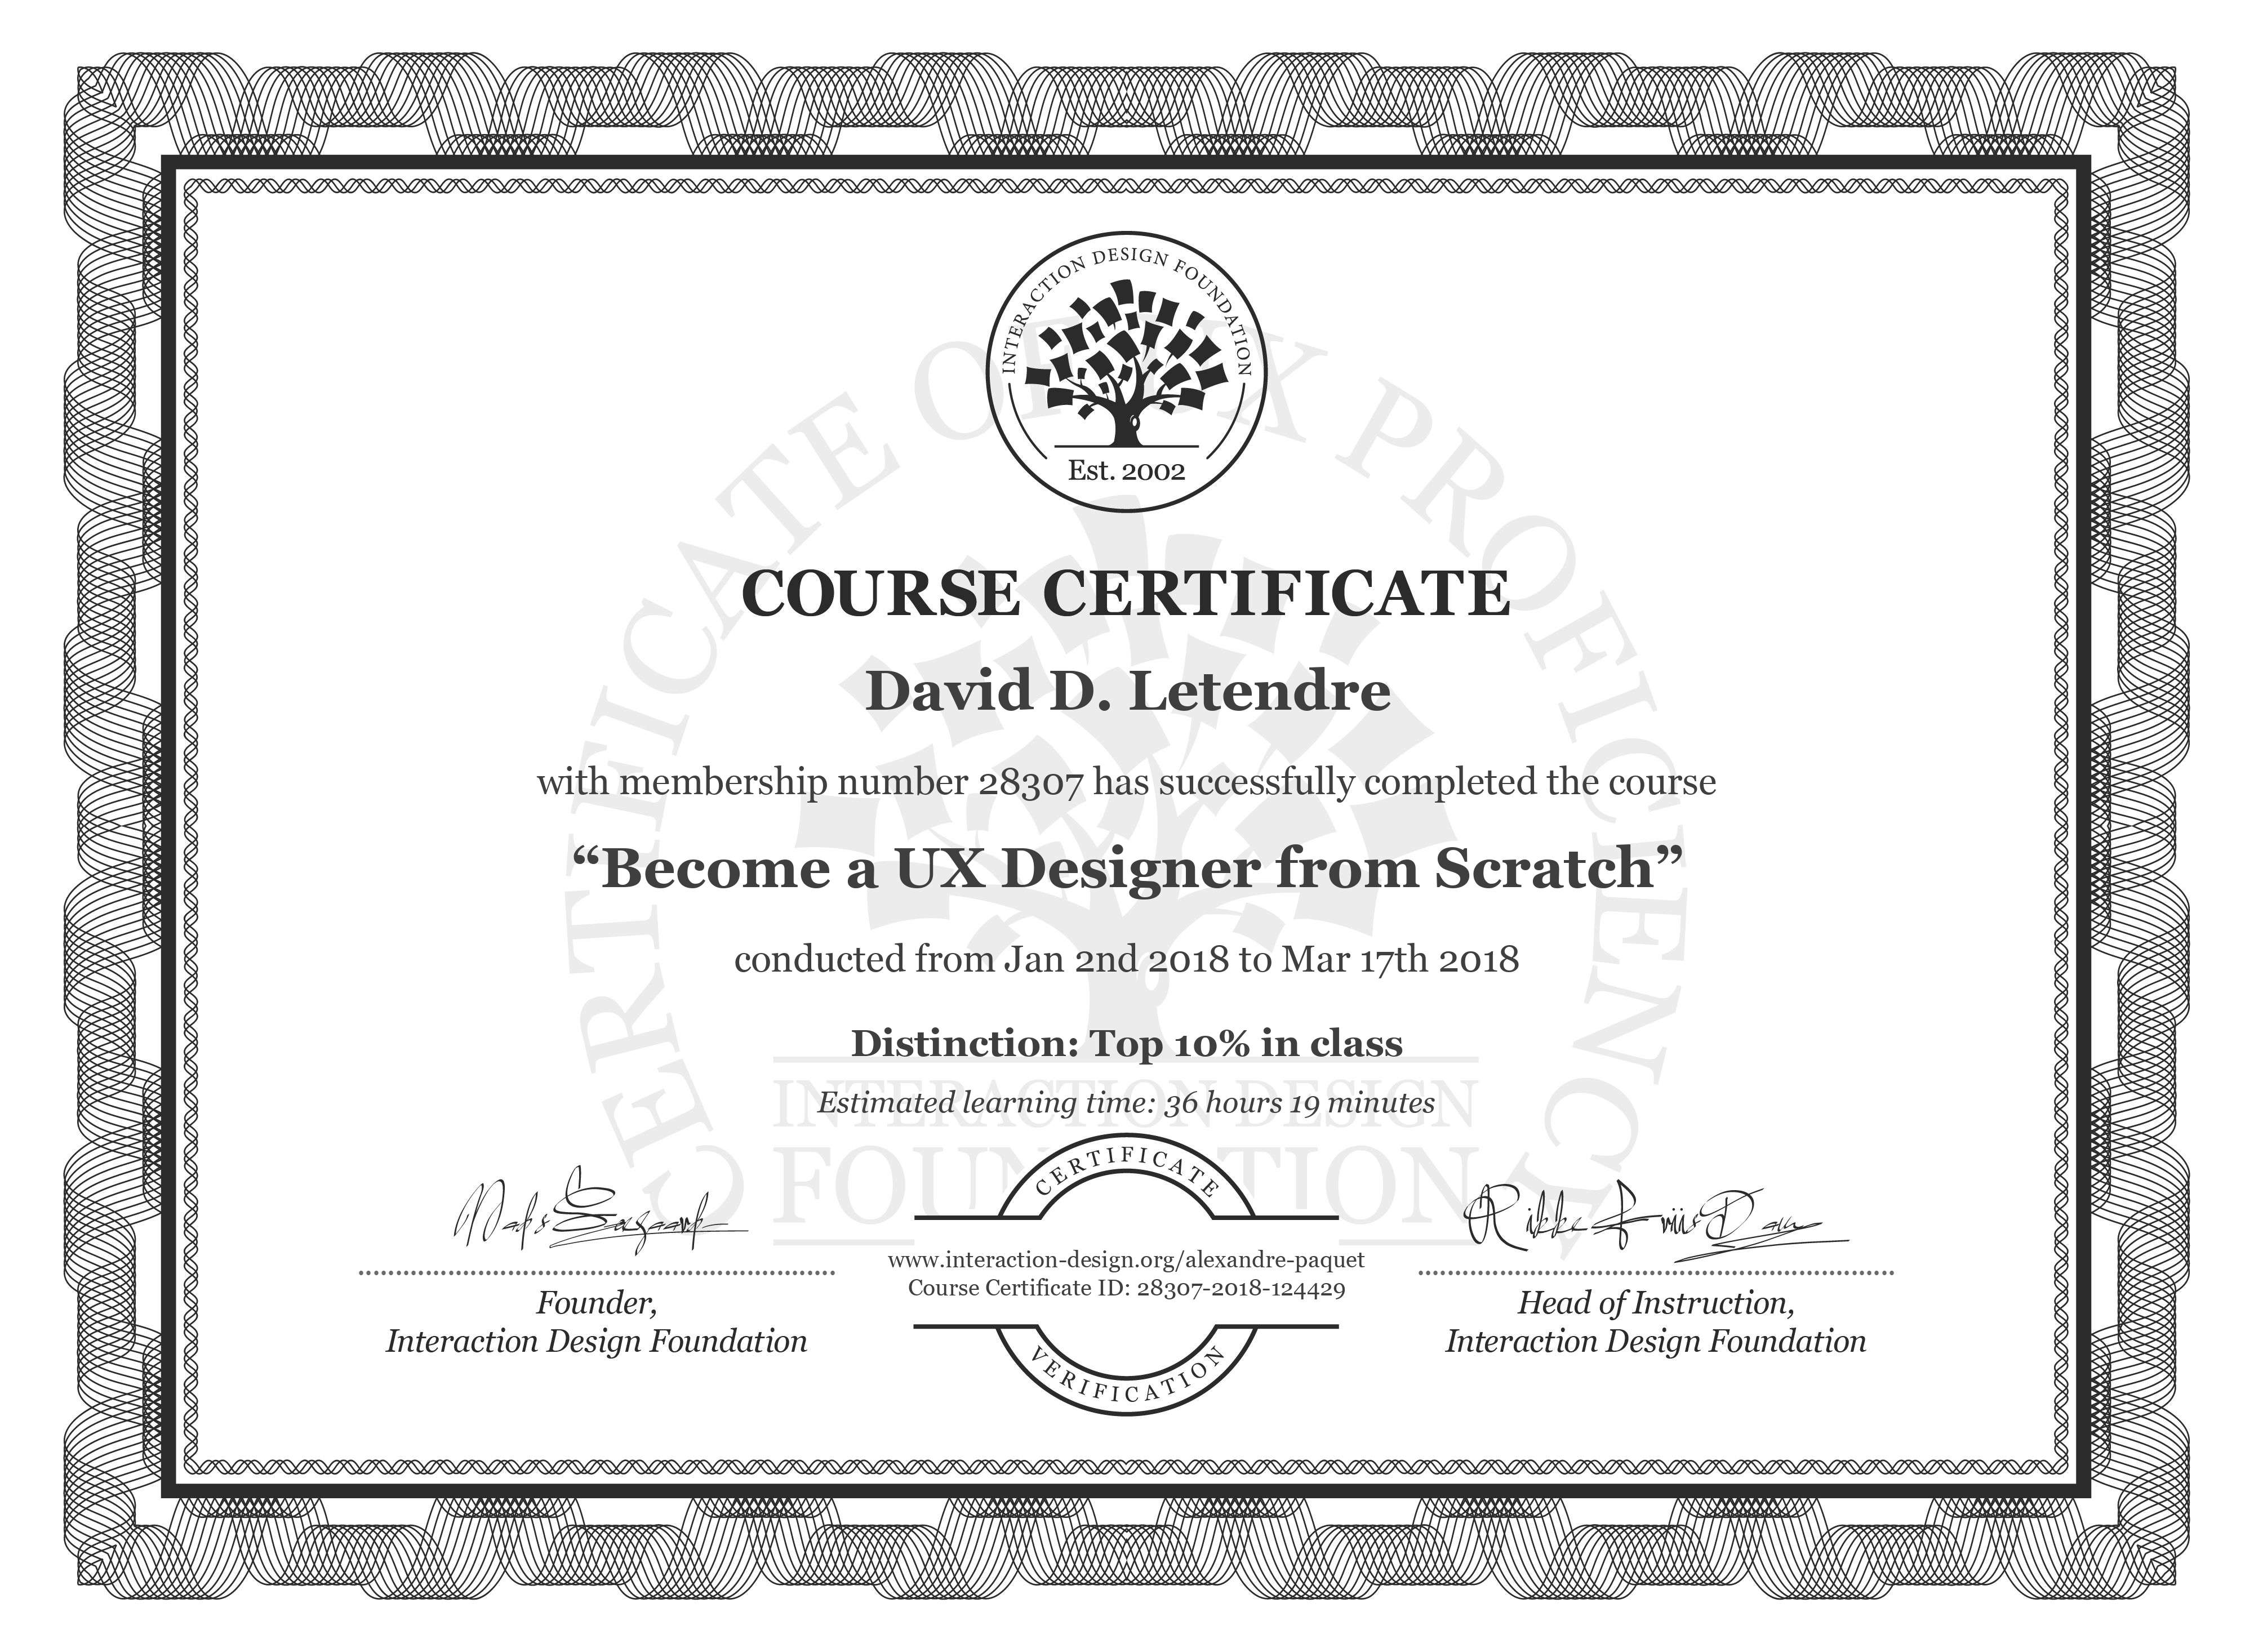 David D. Letendre's Course Certificate: Become a UX Designer from Scratch